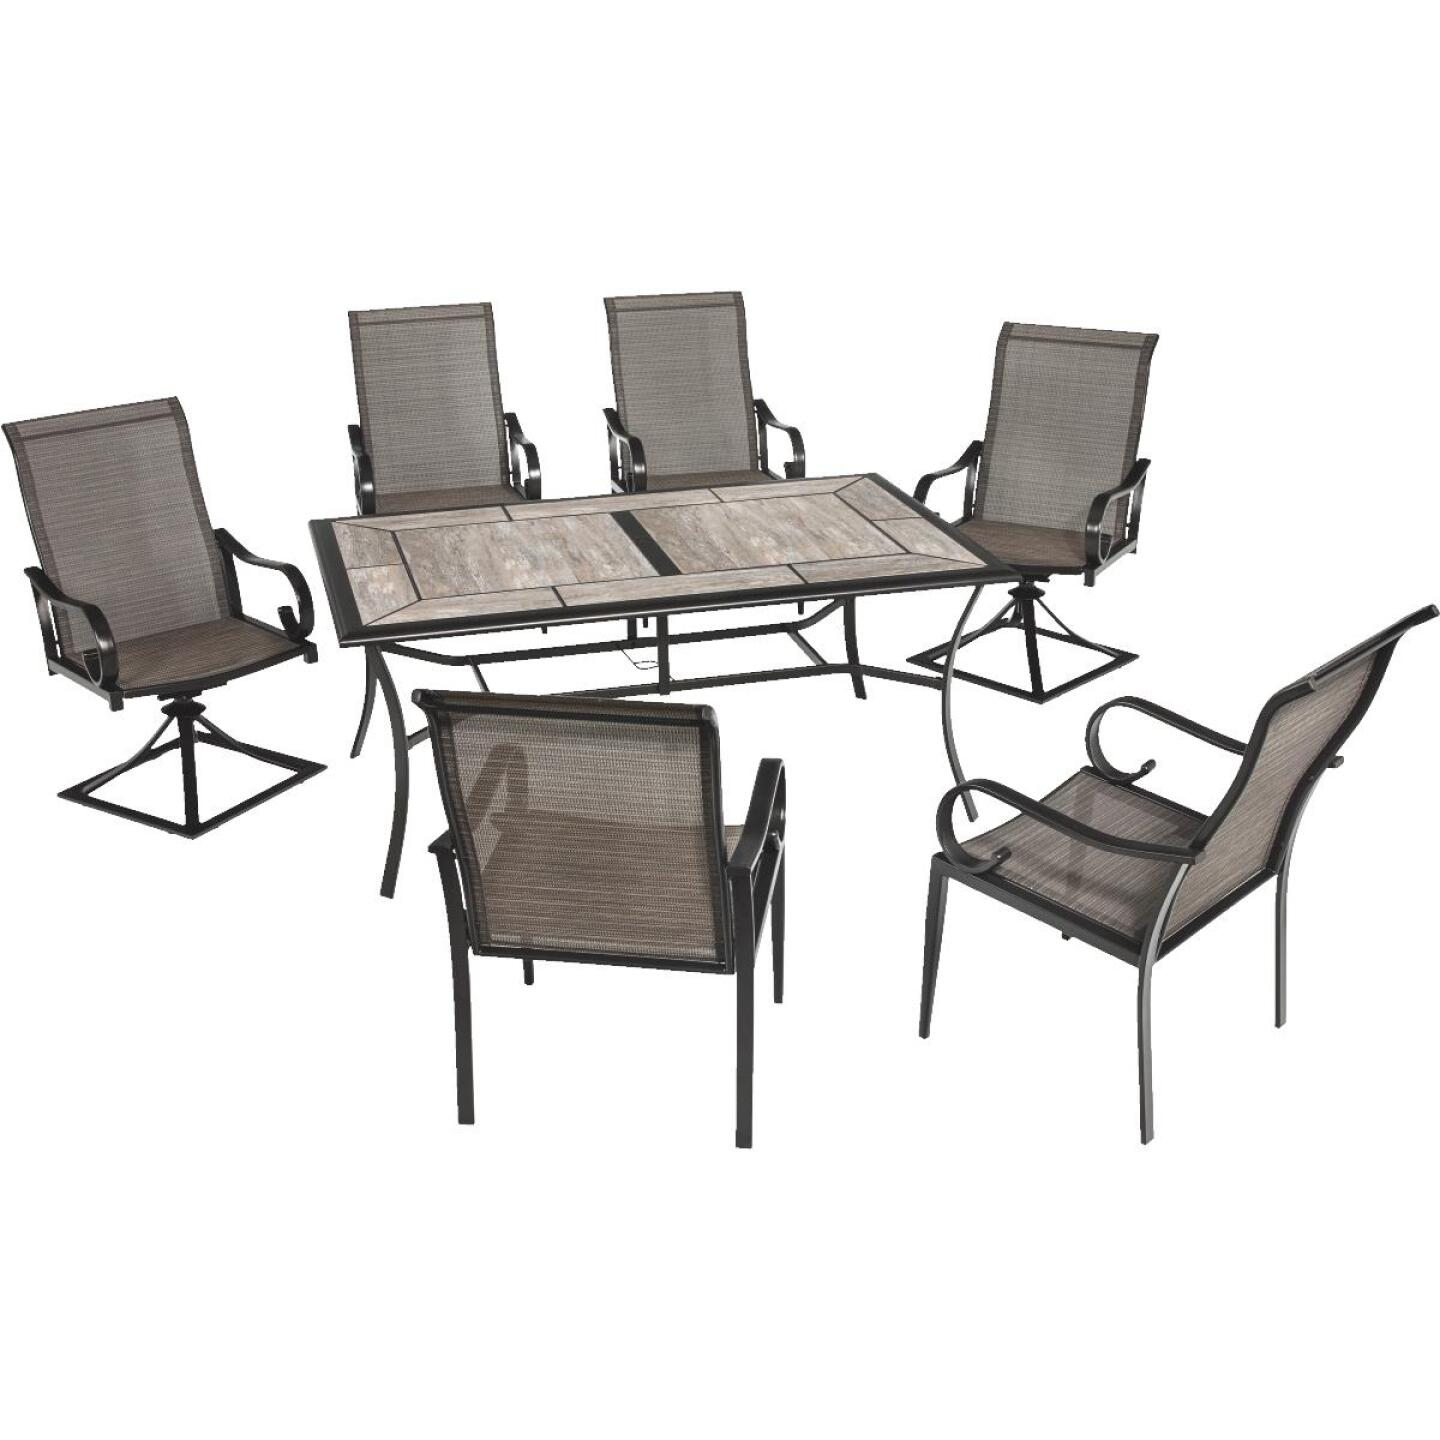 Outdoor Expressions Berkshire 7-Piece Dining Set Image 211